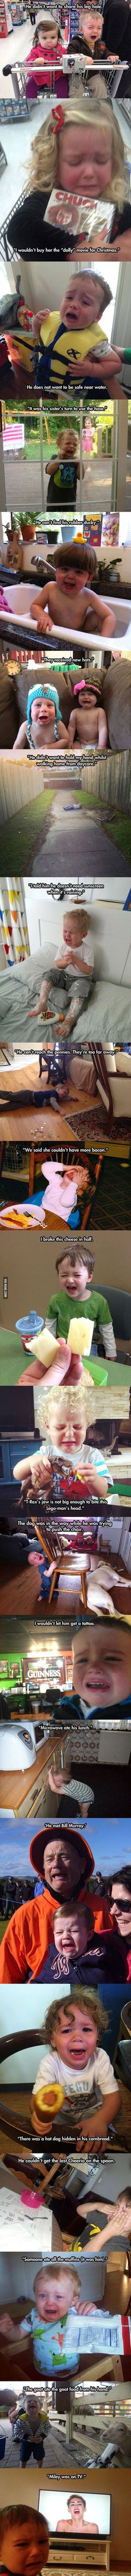 The reasons why these kids cry are hilarious